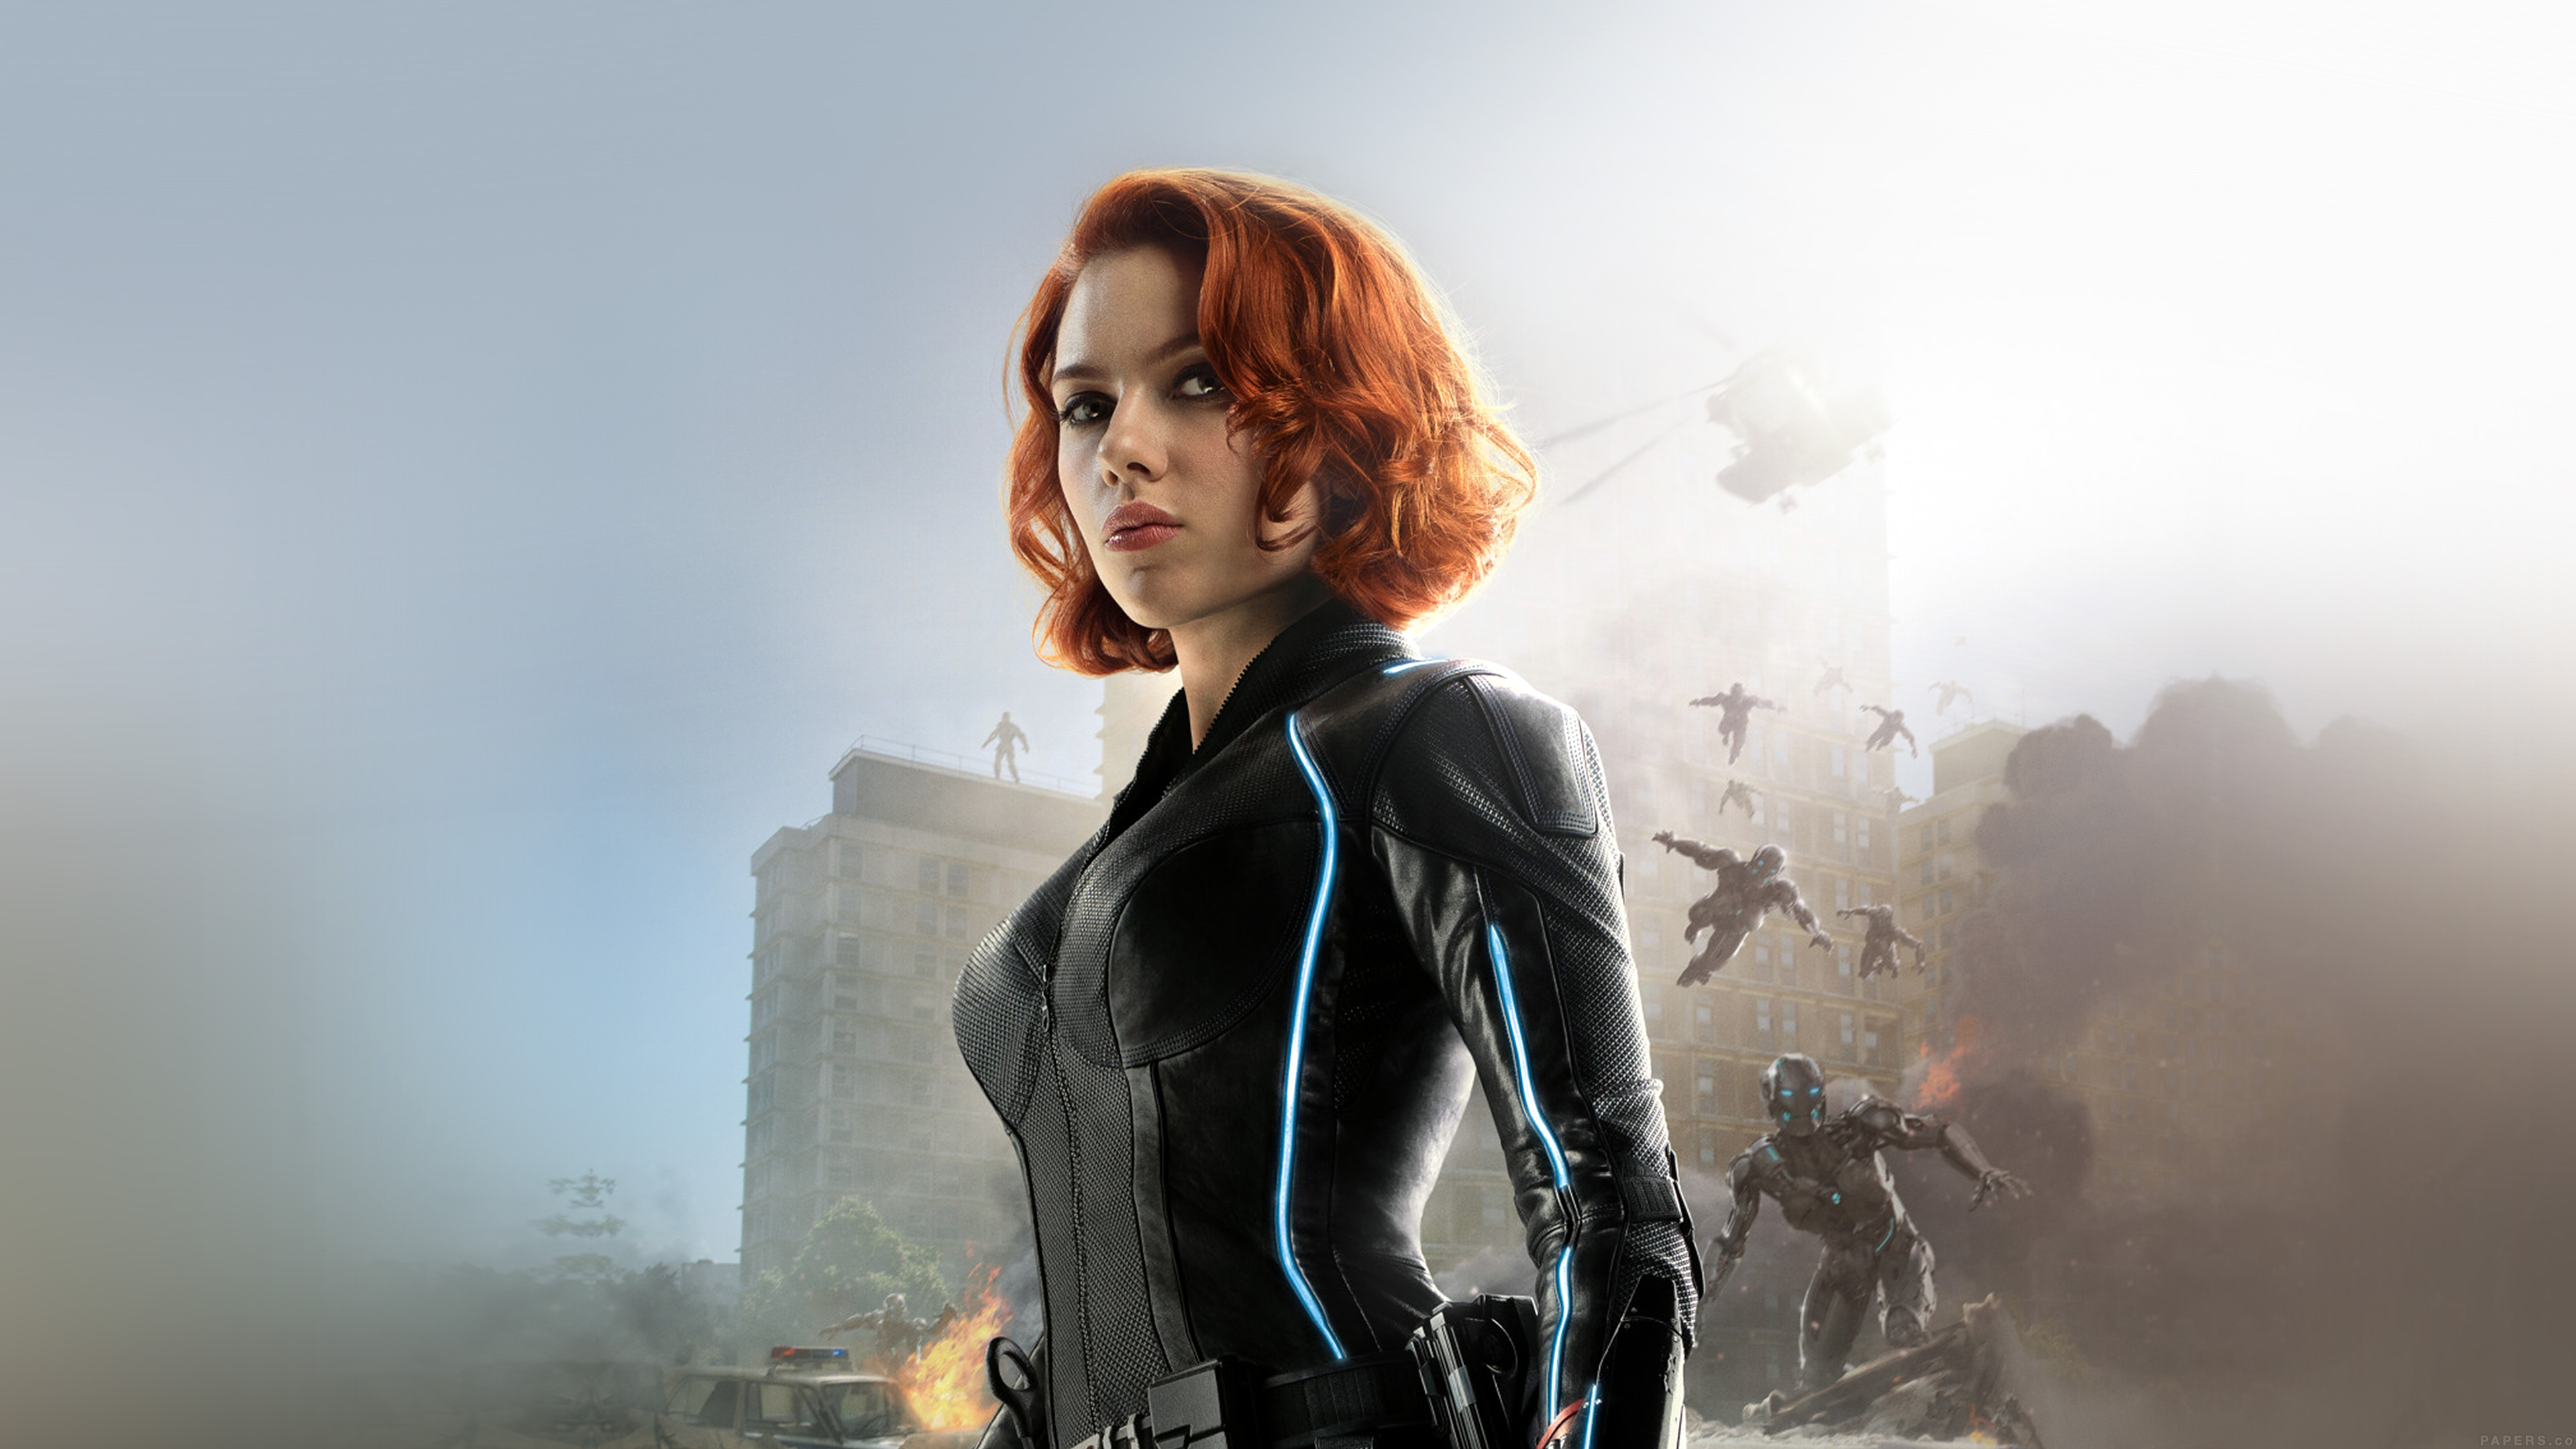 Cute Fall Desktop Wallpaper Ak77 Avengers Age Of Ultron Scarlett Johansson Black Widow